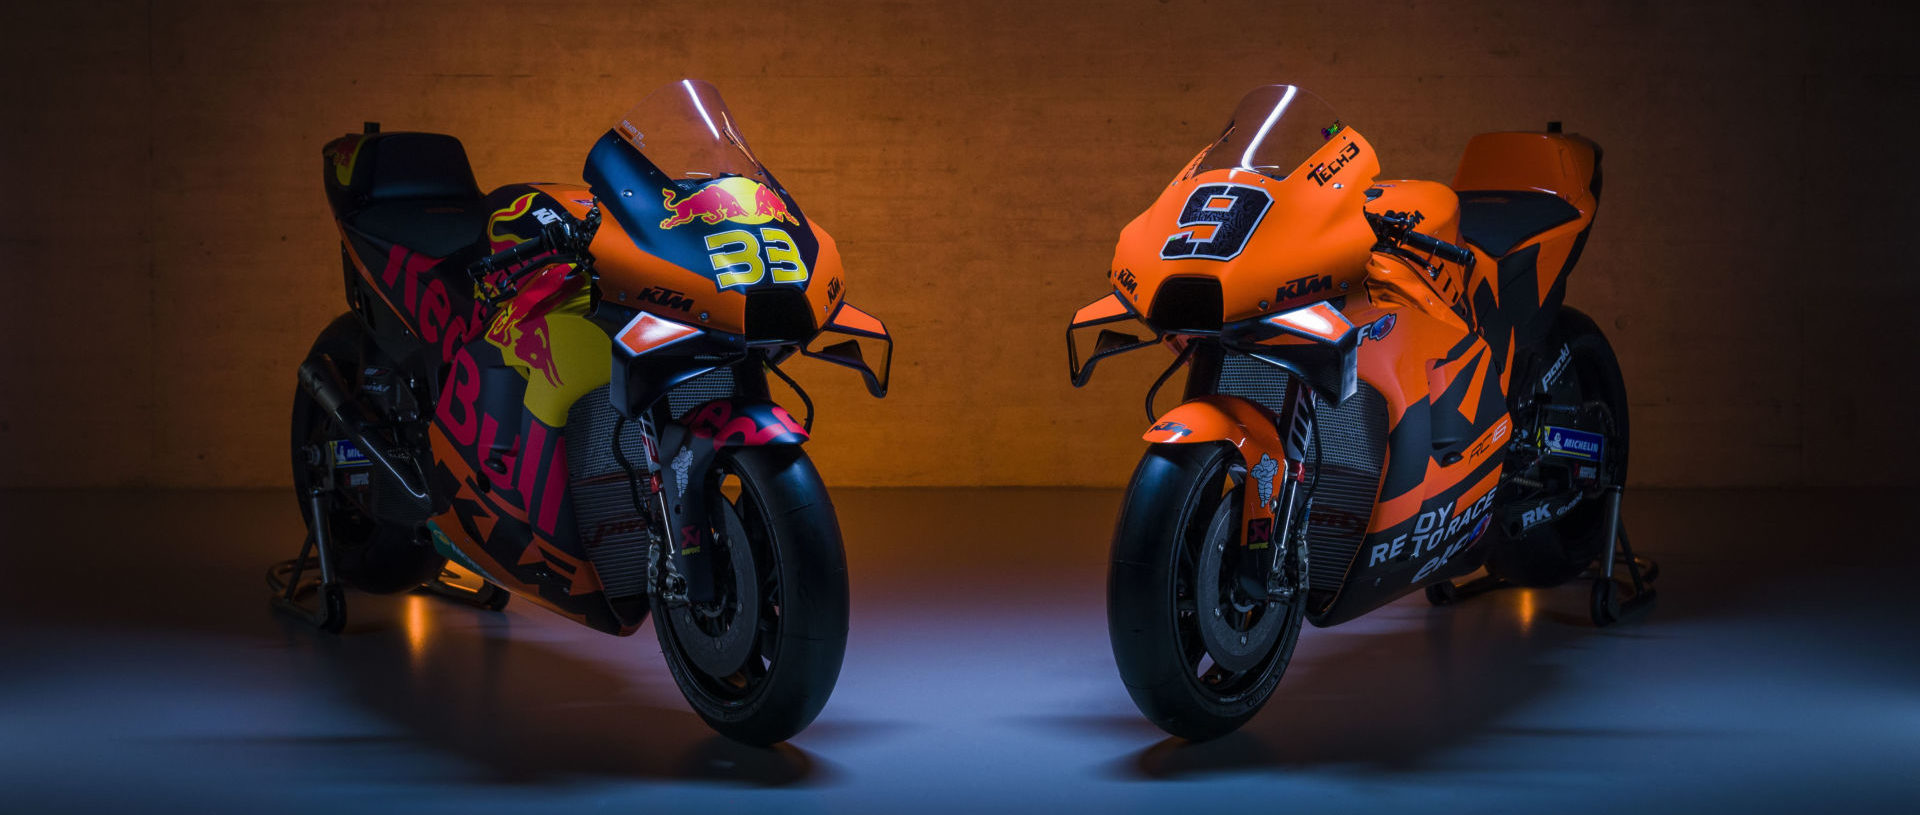 The 2021 KTM RC16 MotoGP racebikes of Brad Binder (33) and Danilo Petrucci (9). Photo by Sebas Romero, courtesy KTM Factory Racing.